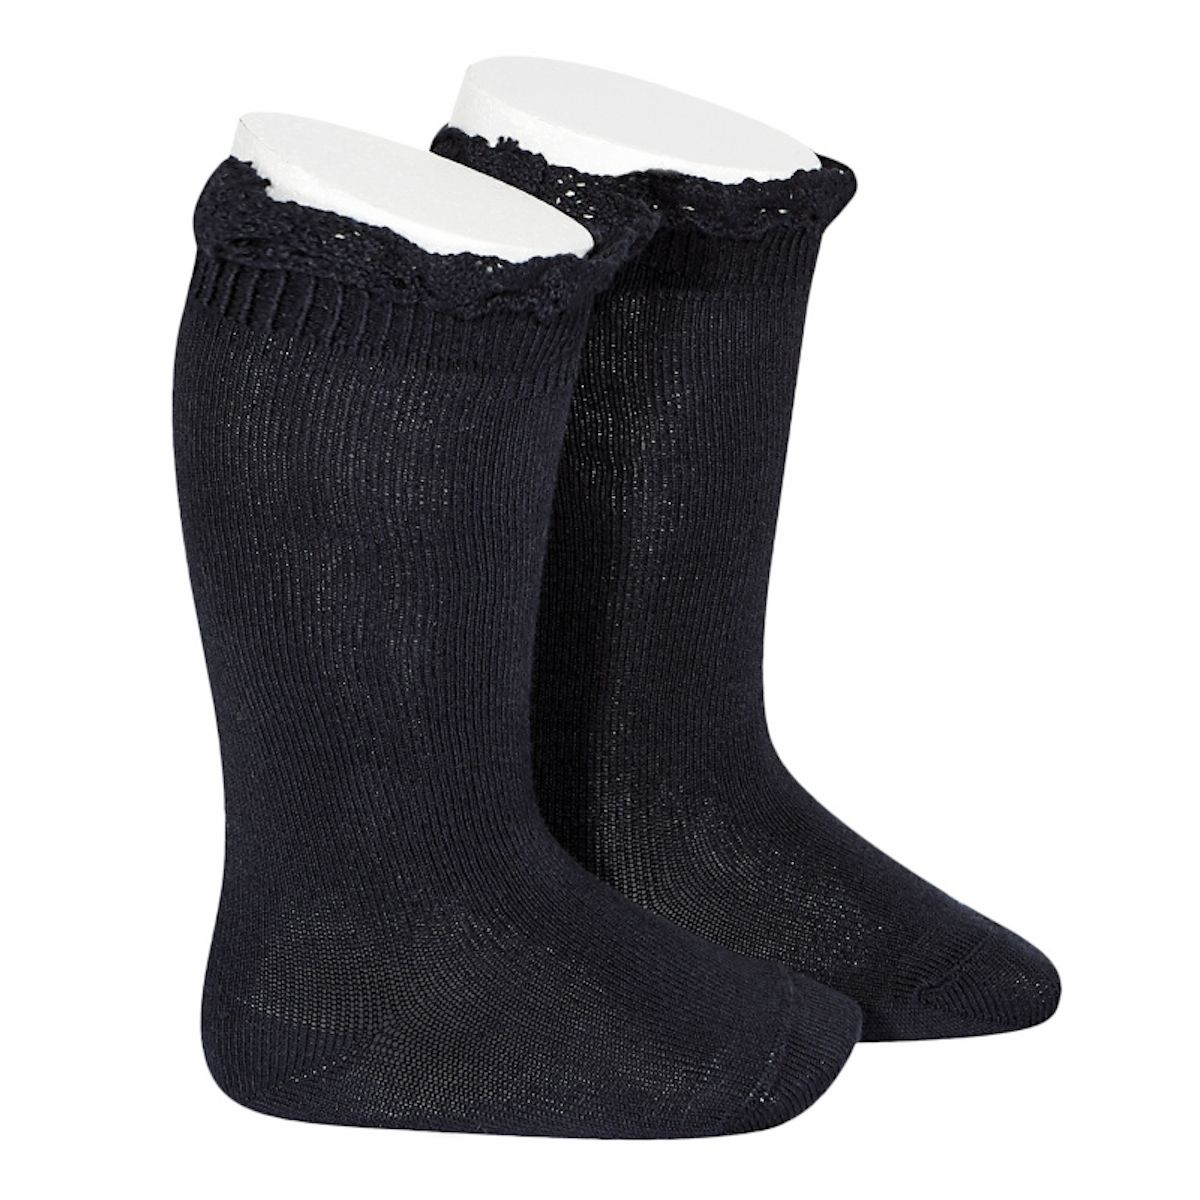 Condor Knee Socks With Lace navy blue